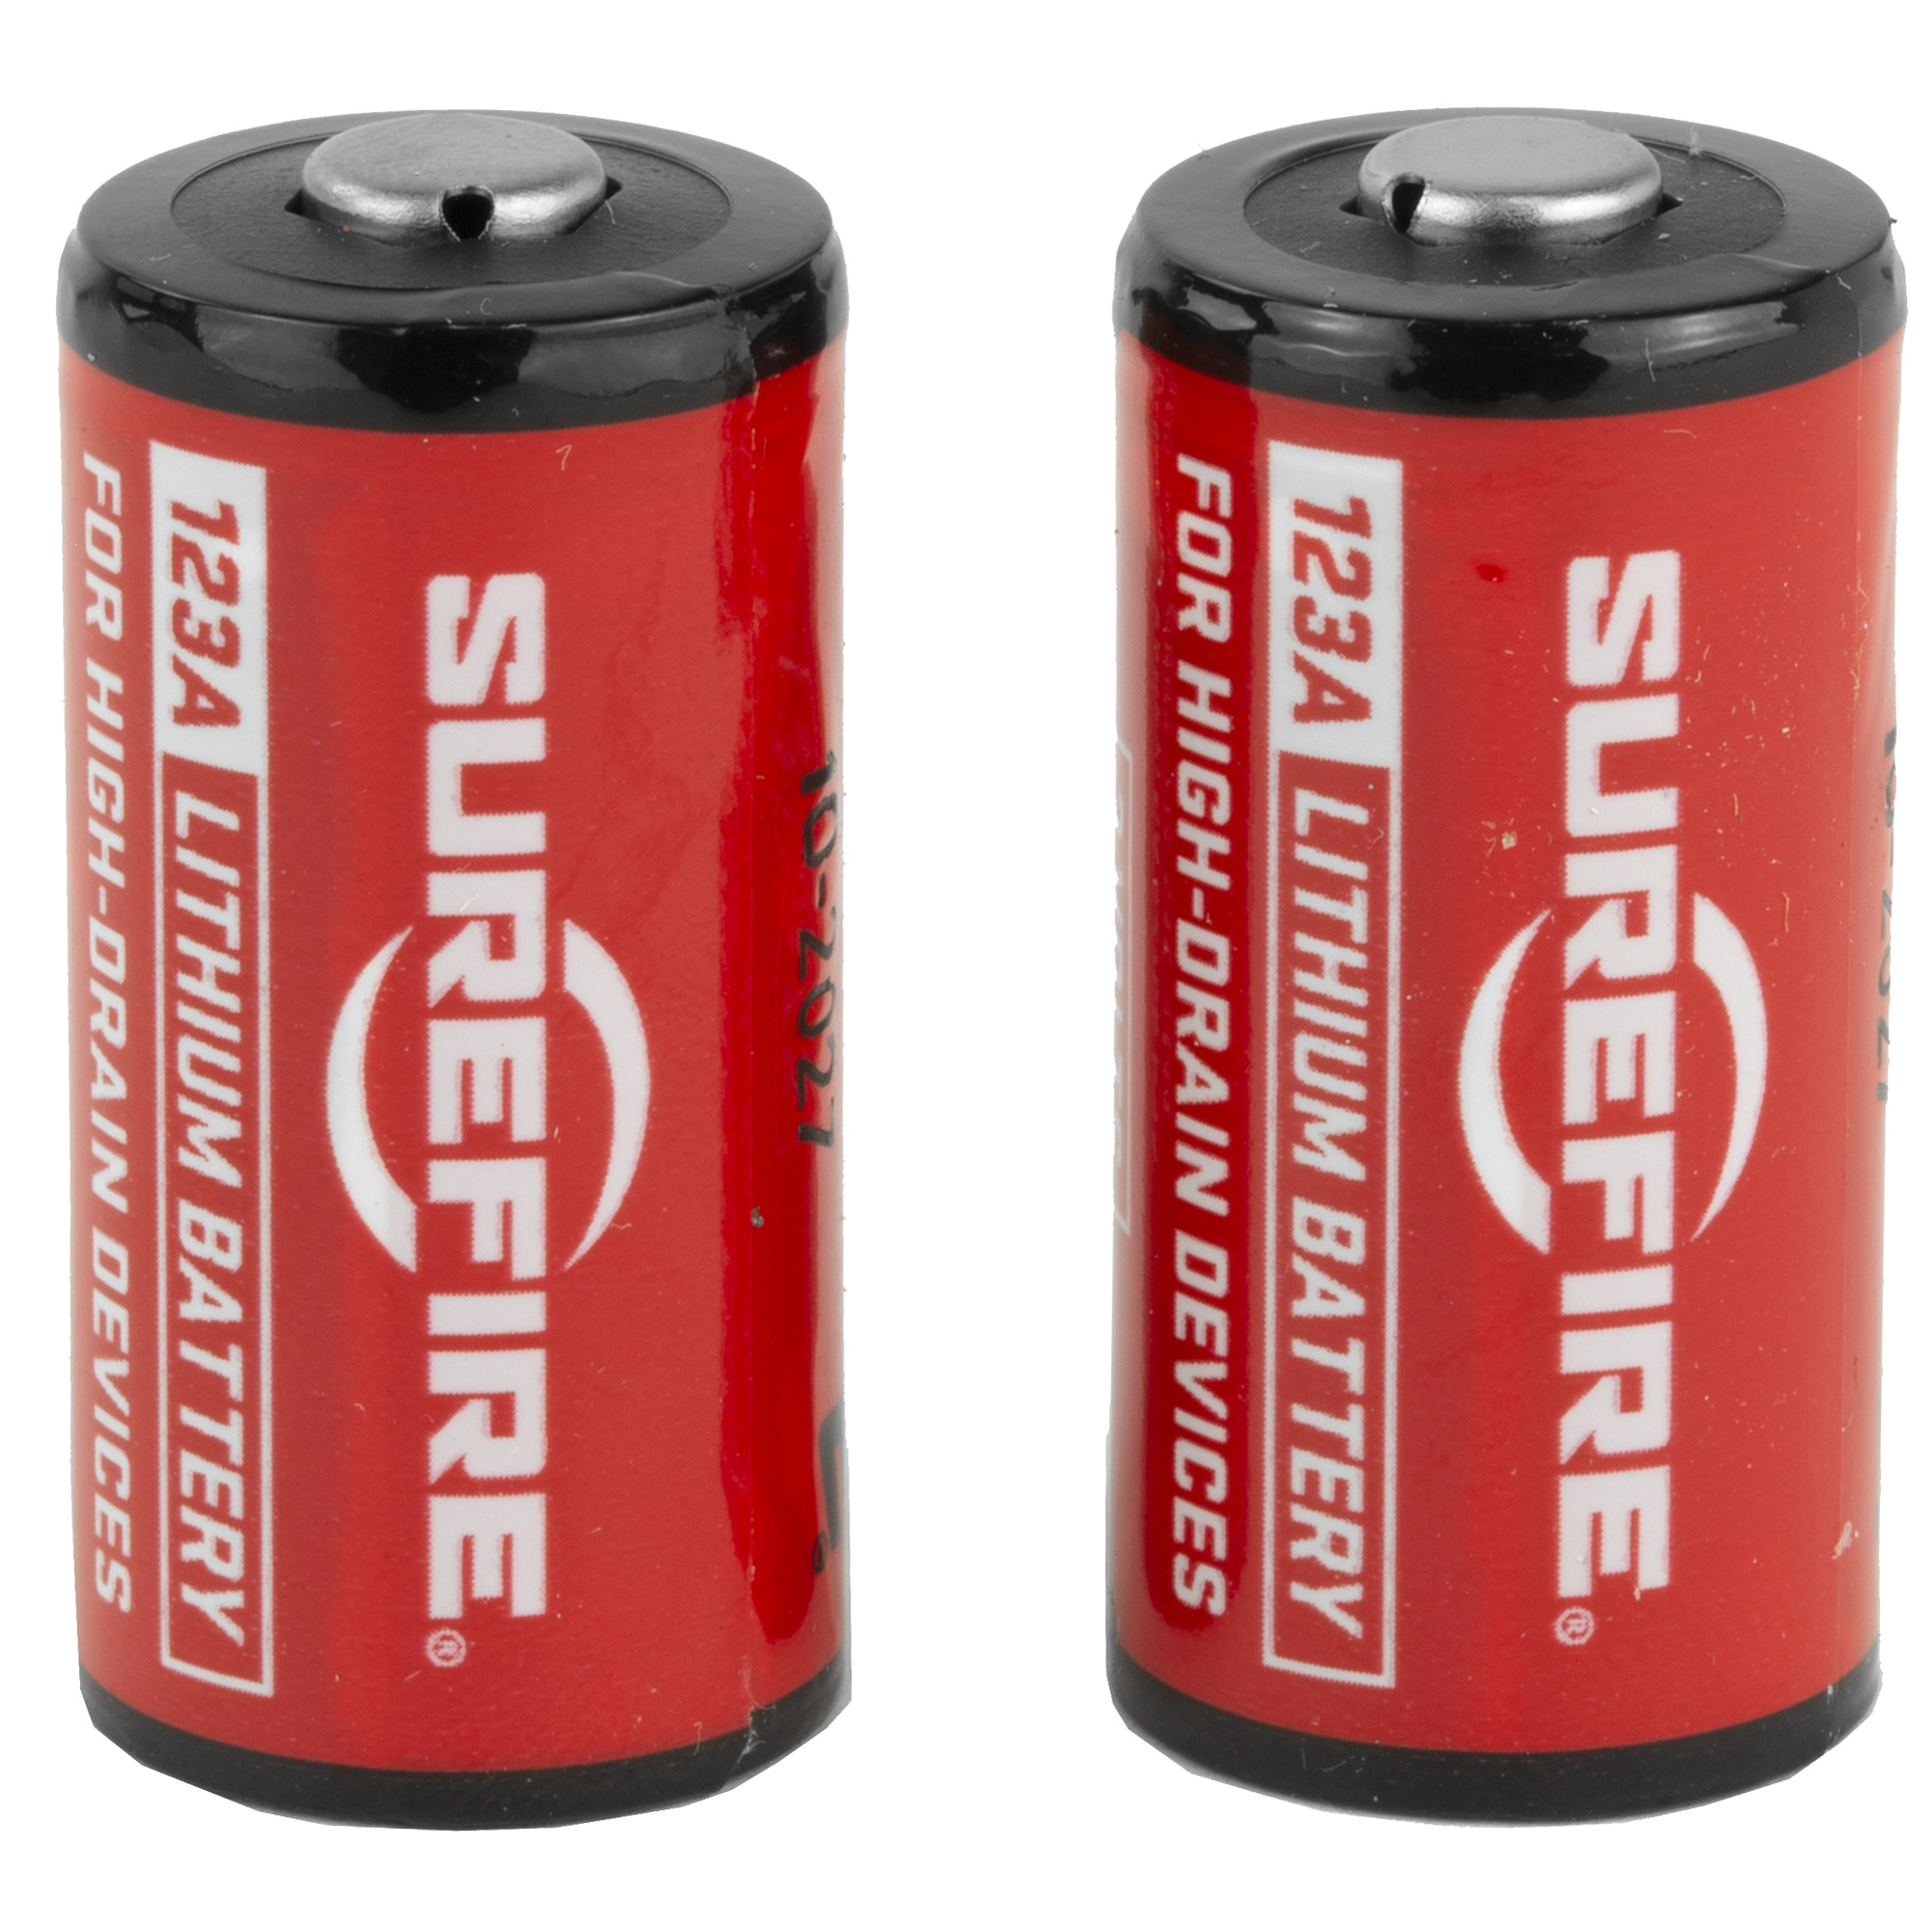 """Optimized for use in SureFire flashlights"""" SureFire lithium batteries pack a lot of power into a small package. And unlike alkaline batteries SureFire high-performance lithium batteries boast a ten-year shelf life"""" which means they will be ready when you need them"""" every time."""